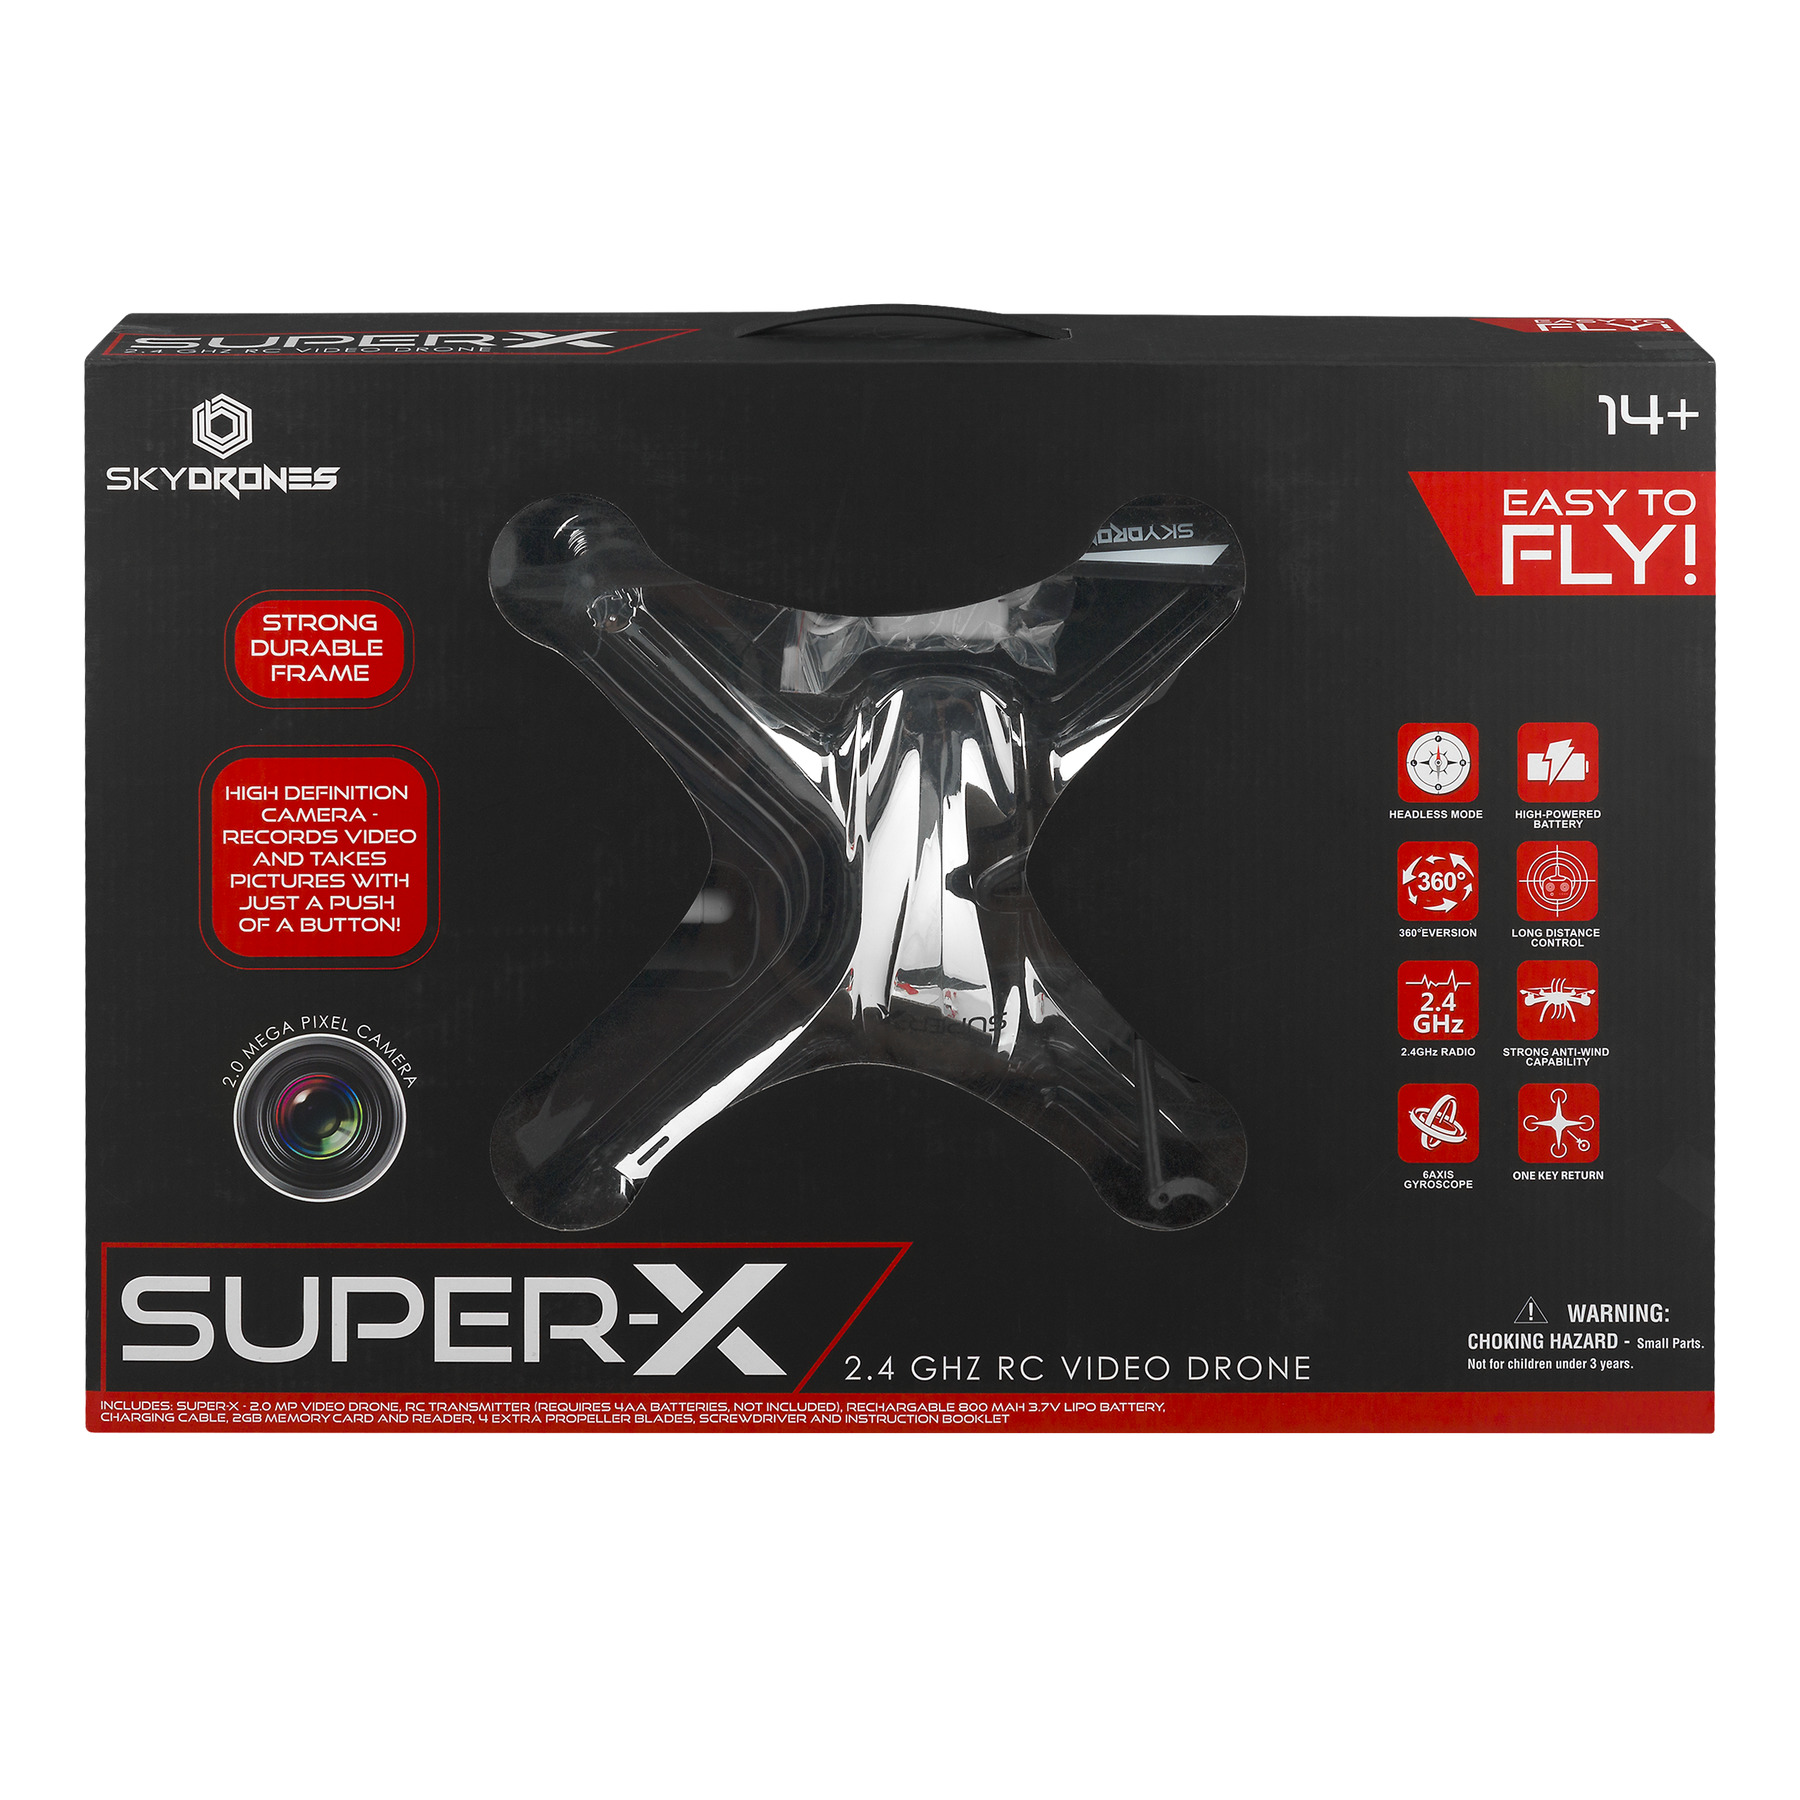 Sky Drones Super-x 2.4GHZ RC Video Drone, 1.0 CT